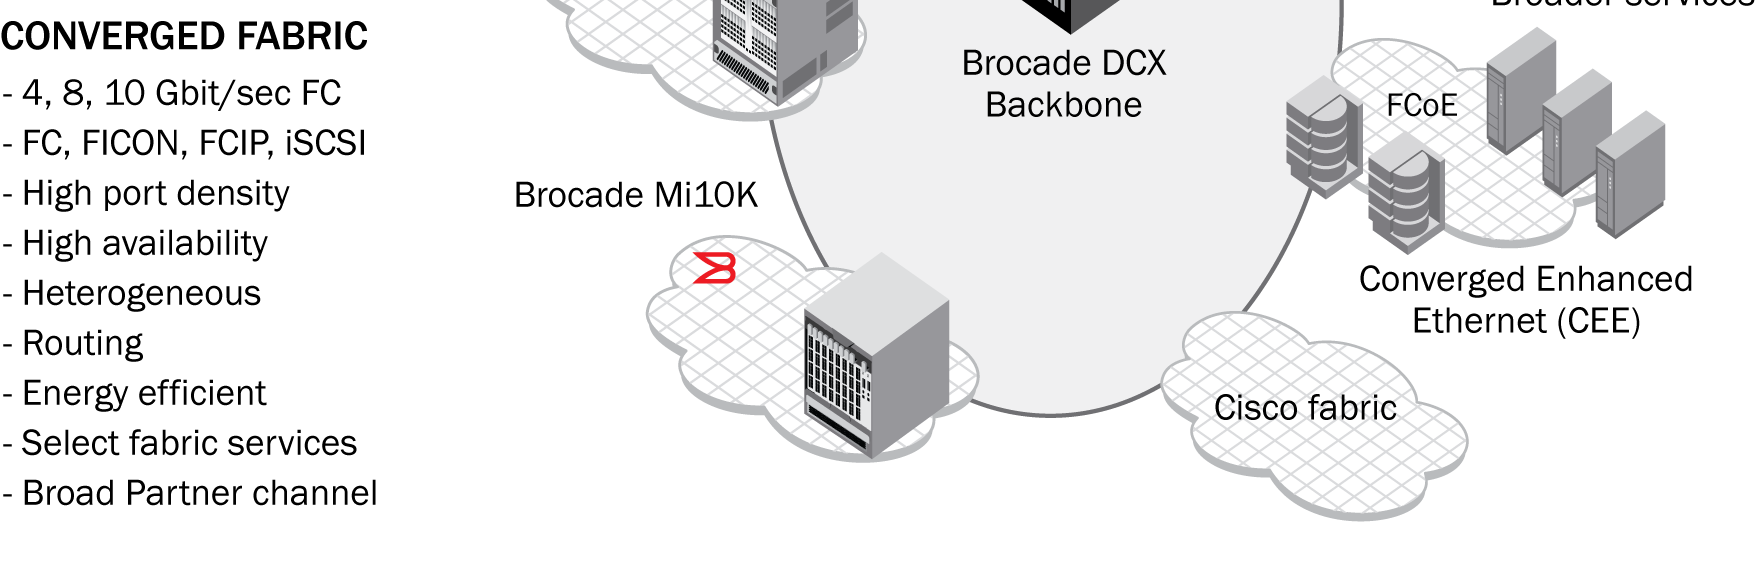 Adding the Brocade DCX to existing SAN fabrics, shown in Figure 4, is non-disruptive, making it a stepping stone in the transformation of existing SAN fabrics to data center fabrics.